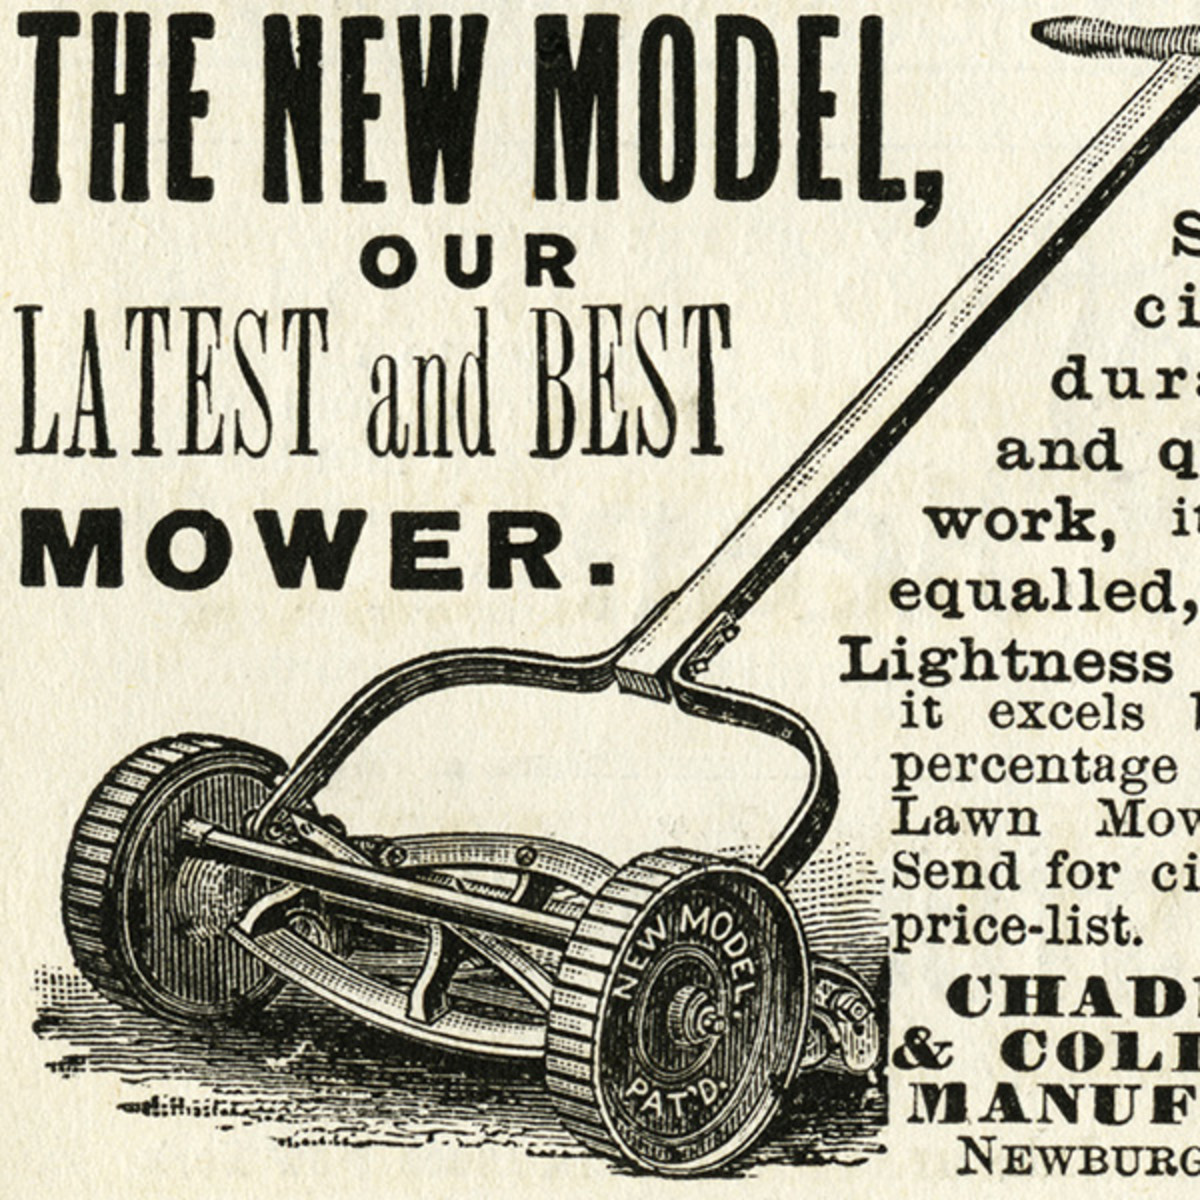 The Two-Wheel Lawnmowers Controversy